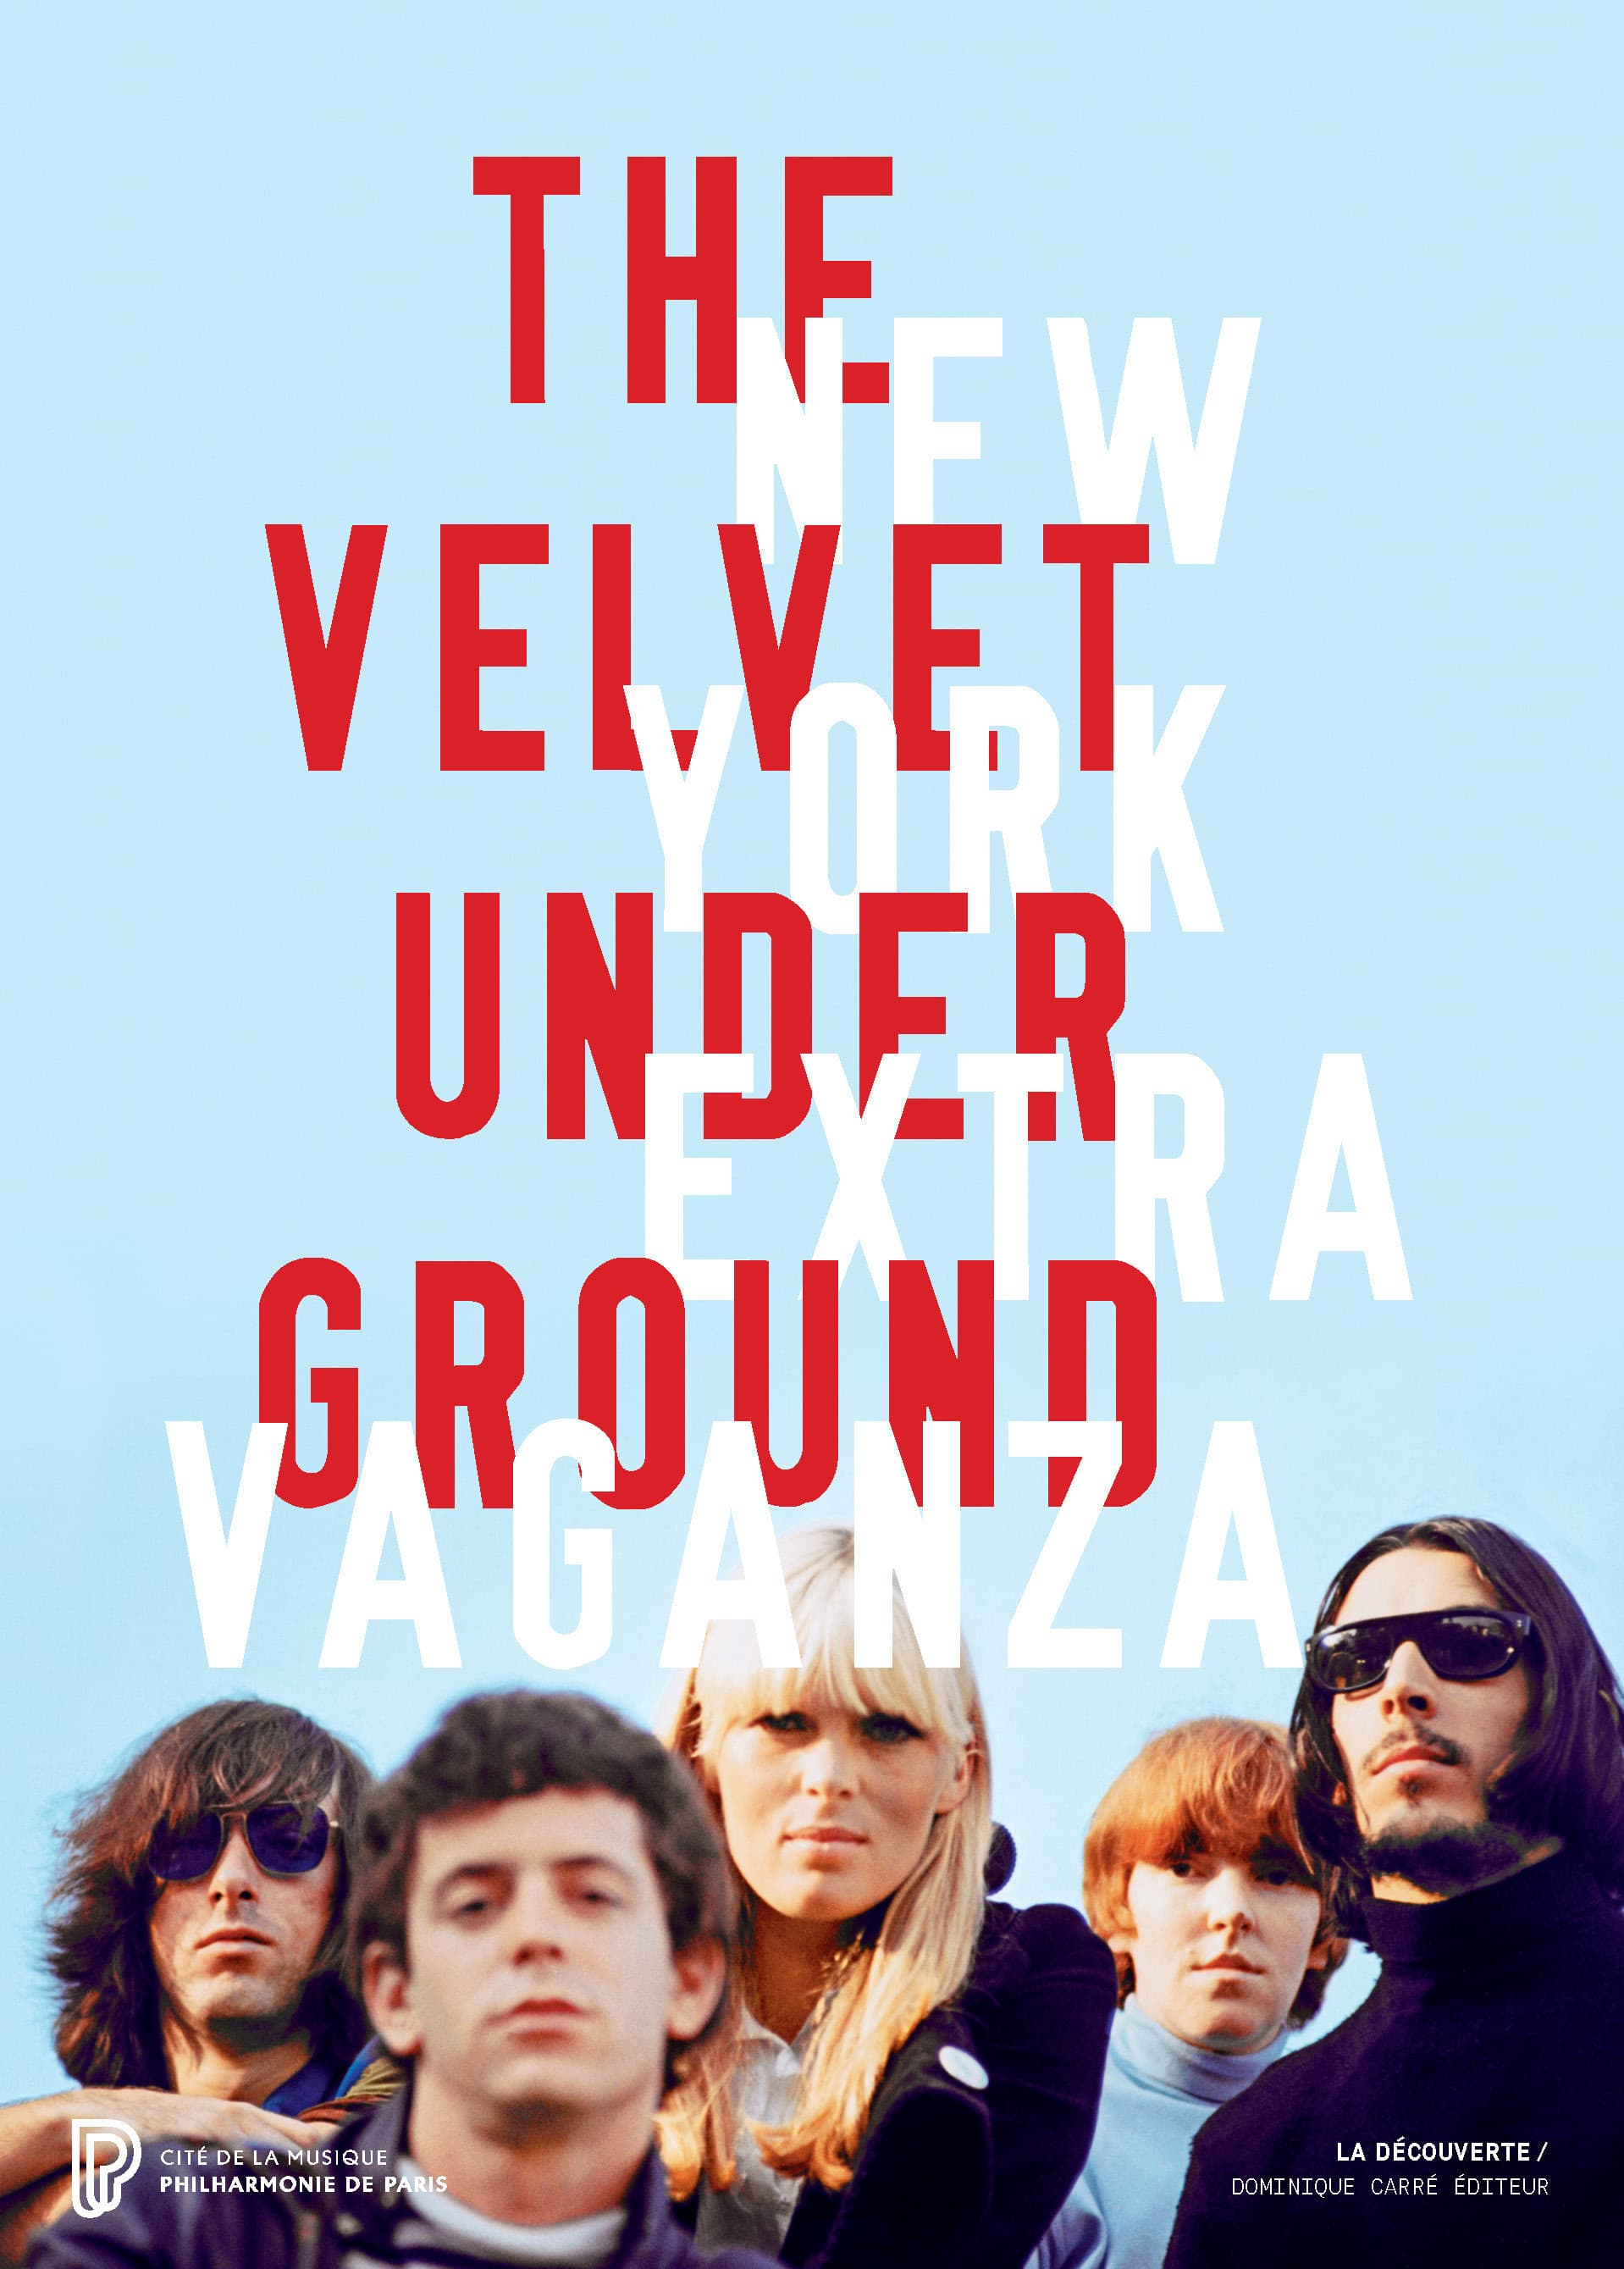 The Velvet Underground New York Extravaganza